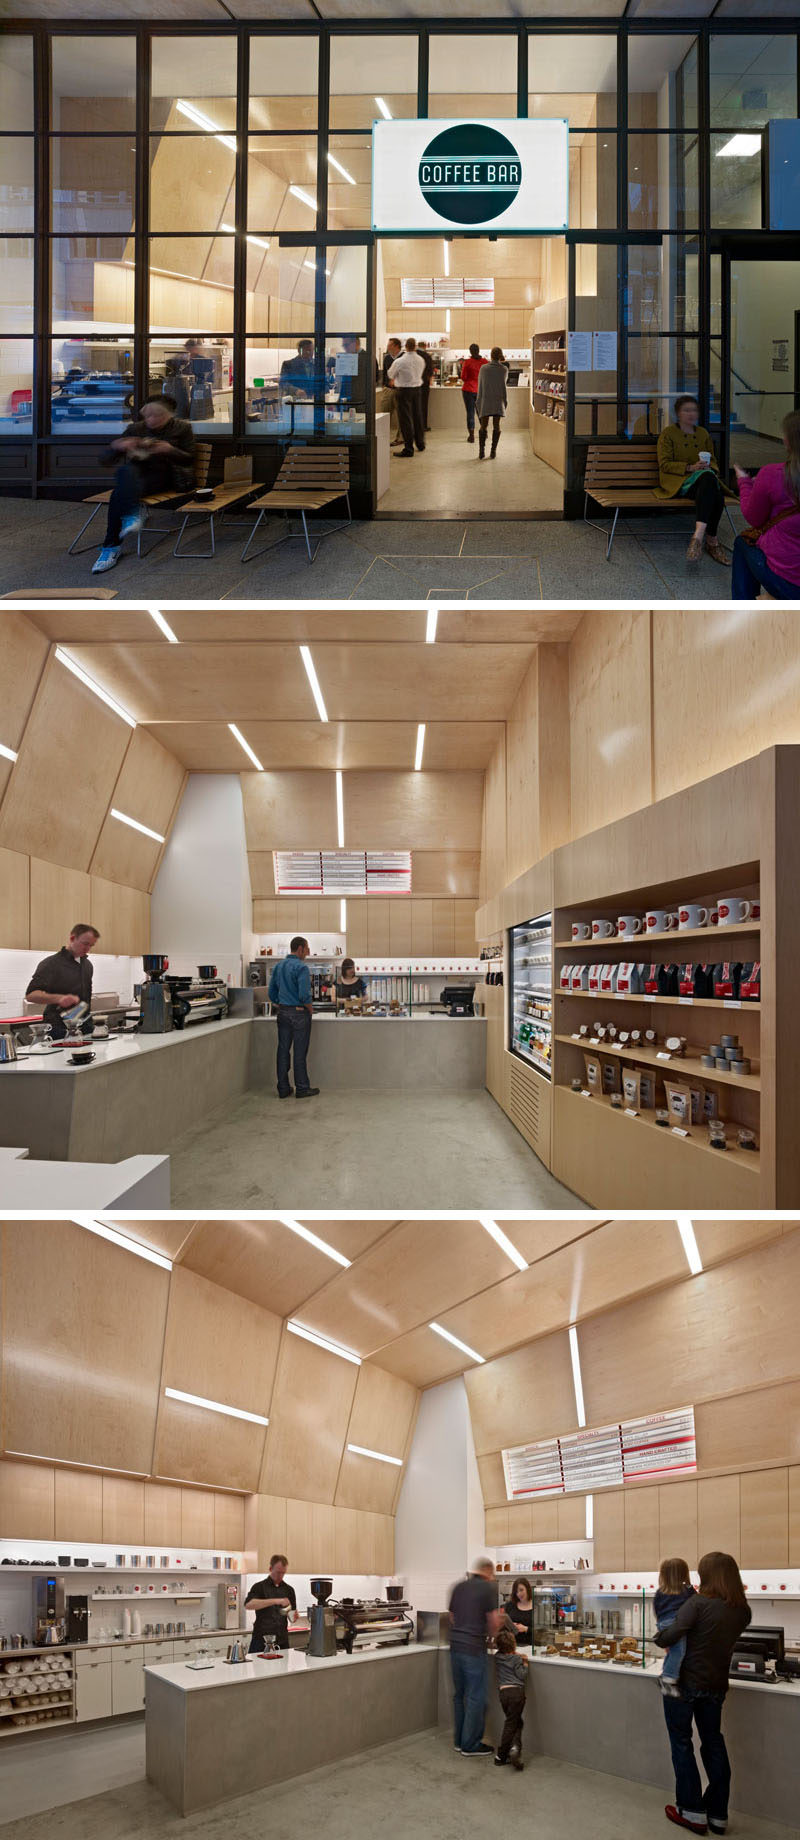 This modern coffee shop design has the walls and ceiling covered in plywood. Embedded within the plywood walls are strips of lighting creating a unique and artistic design.